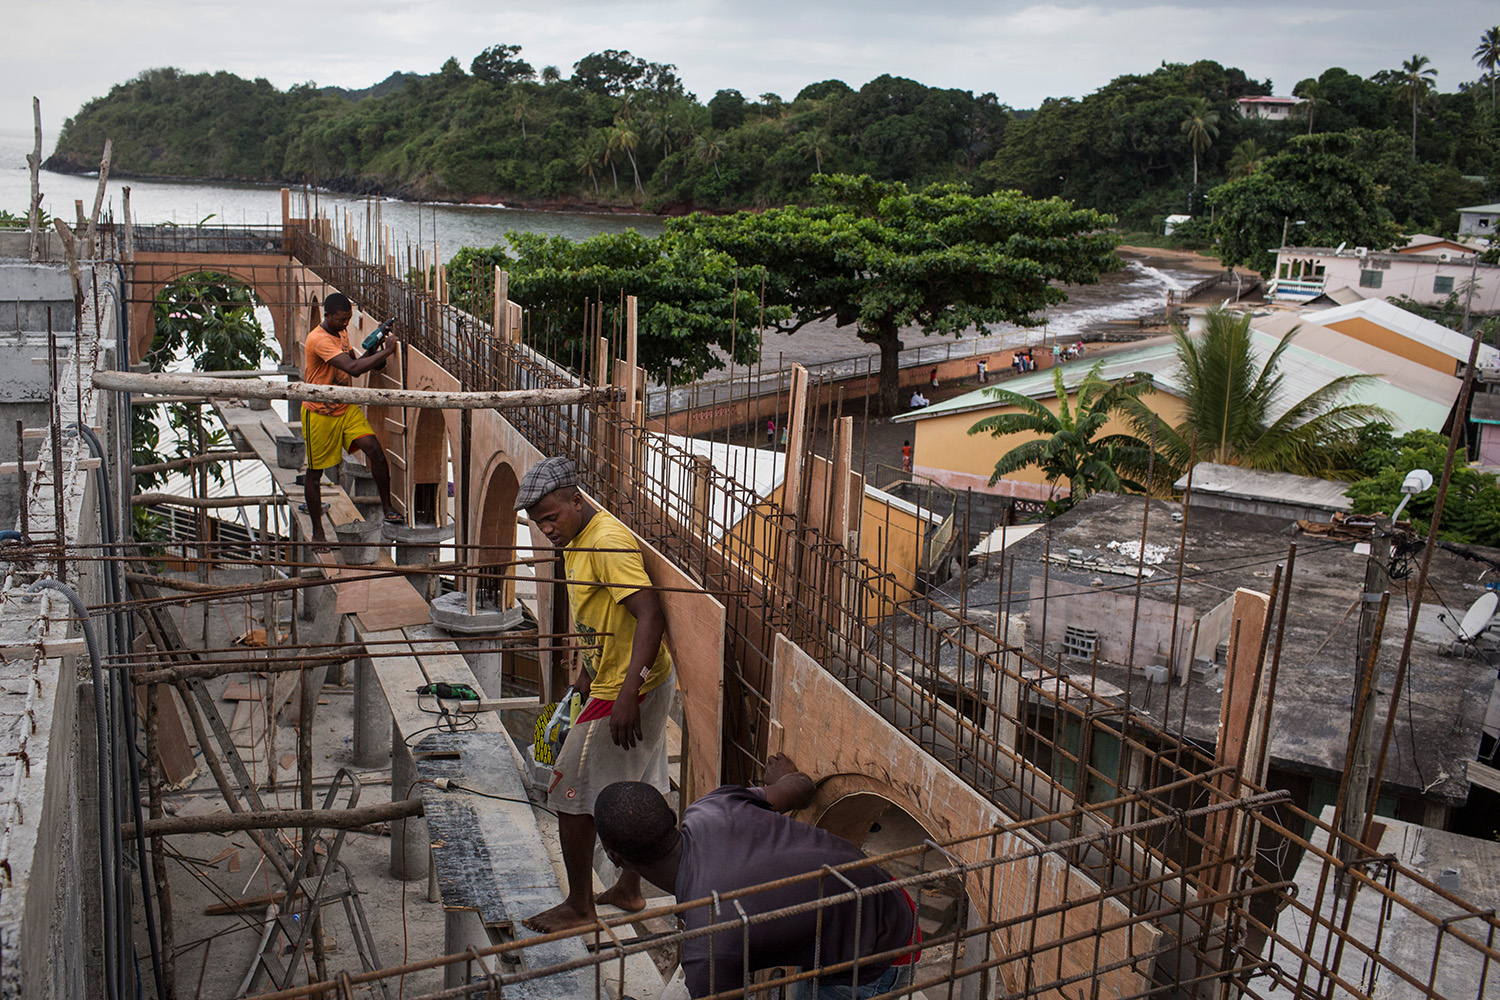 Workers enlarge the Mosque Vendredi in Mtsamboro at north of Mayotte on Monday, June 15, 2015. Most of the migrants disembark from kwassa on Mtsamboro islet, the nearest point to Anjouan. The illegal immigrant population of Mayotte may reach 50.000 to 60.000 people, approximately 30% of its legal population.